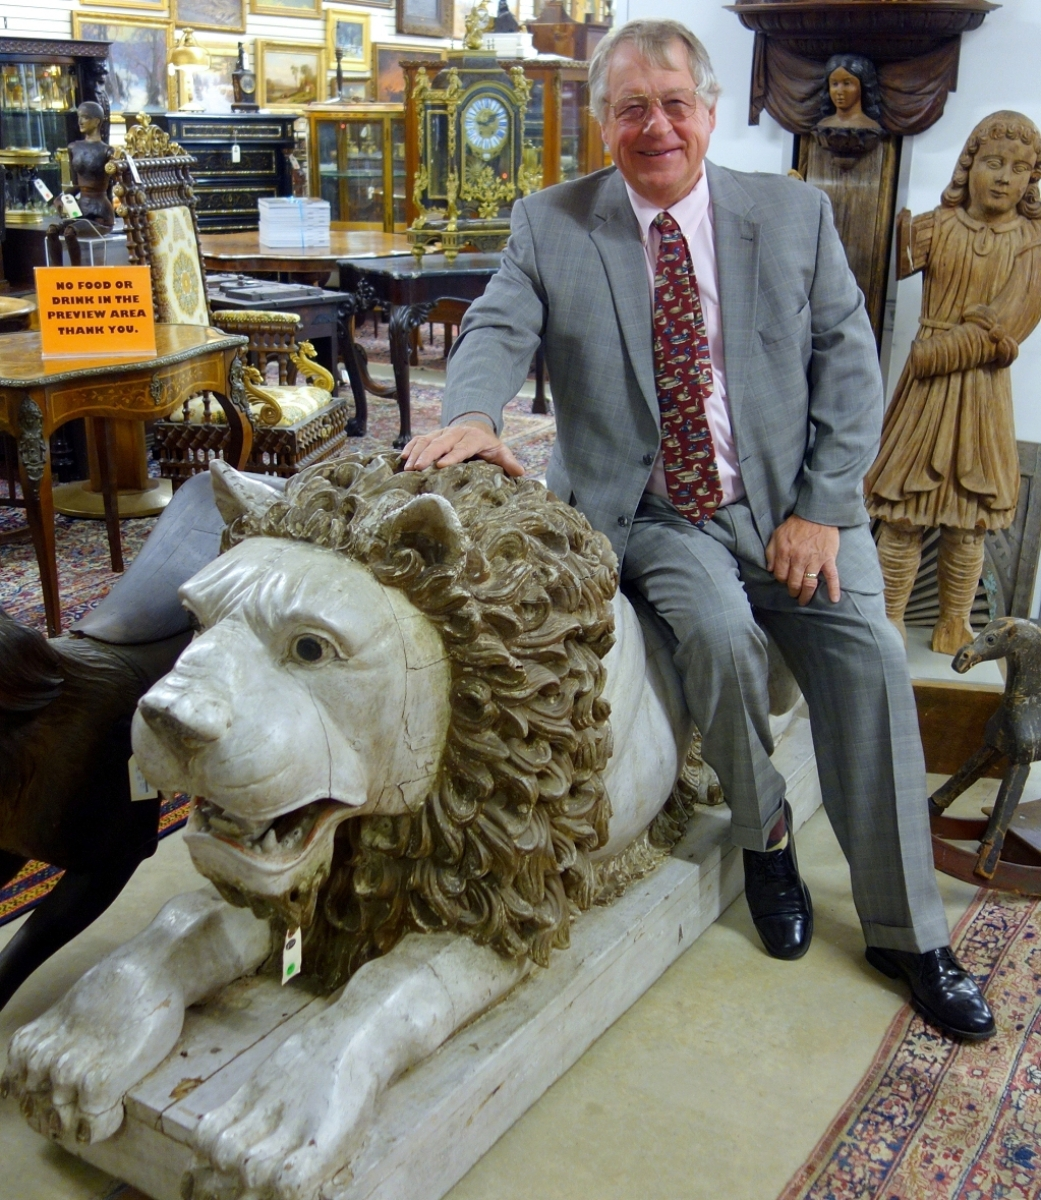 Jim Julia presided over a $3.65 million auction of fine and decorative arts in August 2017.   The lion, a crowd-pleaser, found a new home with Pennsylvania dealer Diana Bittel.